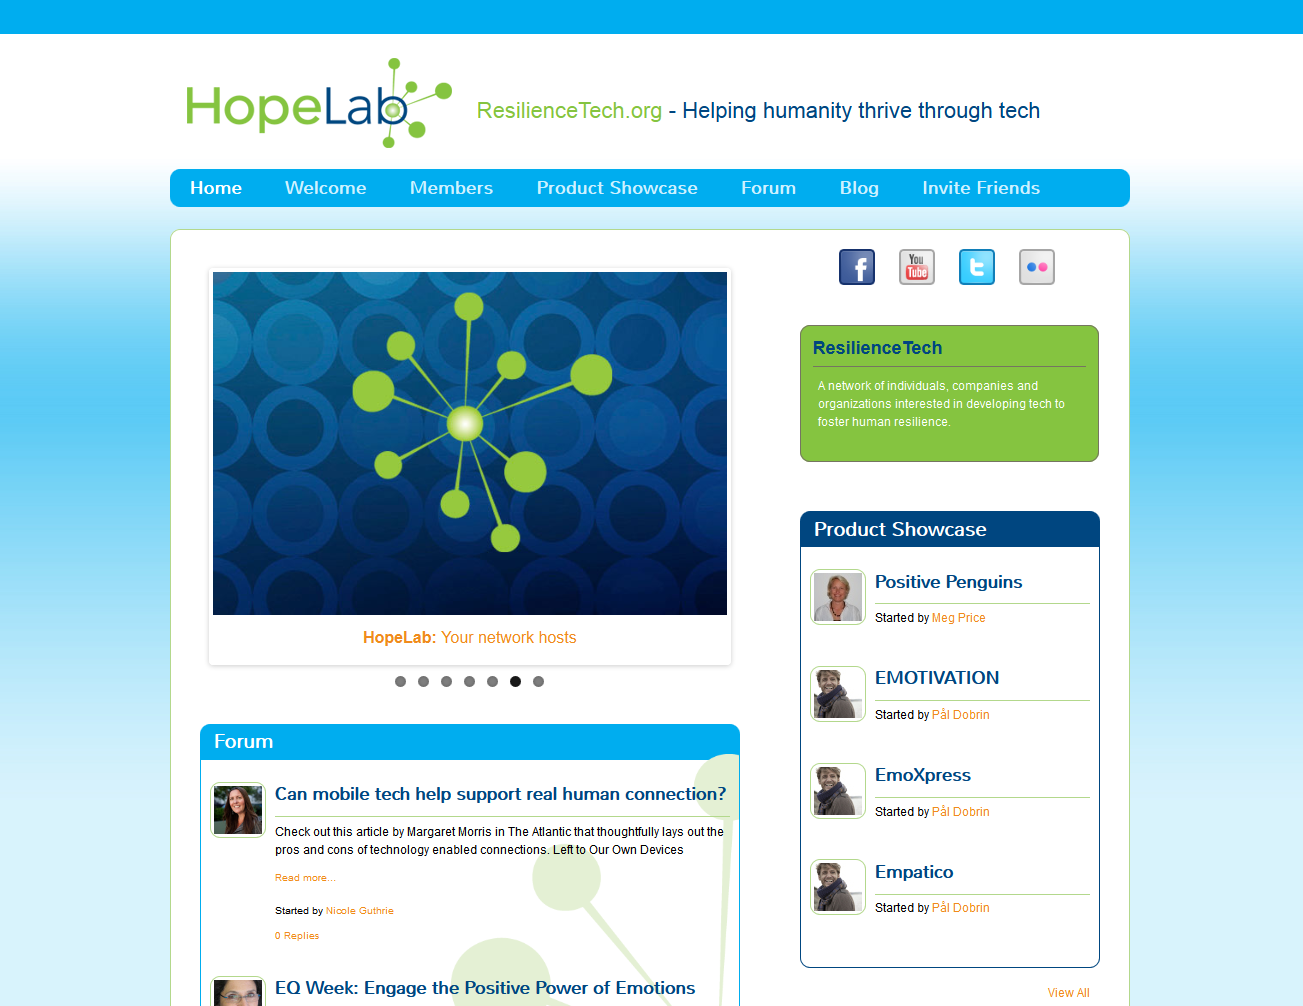 HopeLab Resilience Tech - Ning platform with brand mirroring